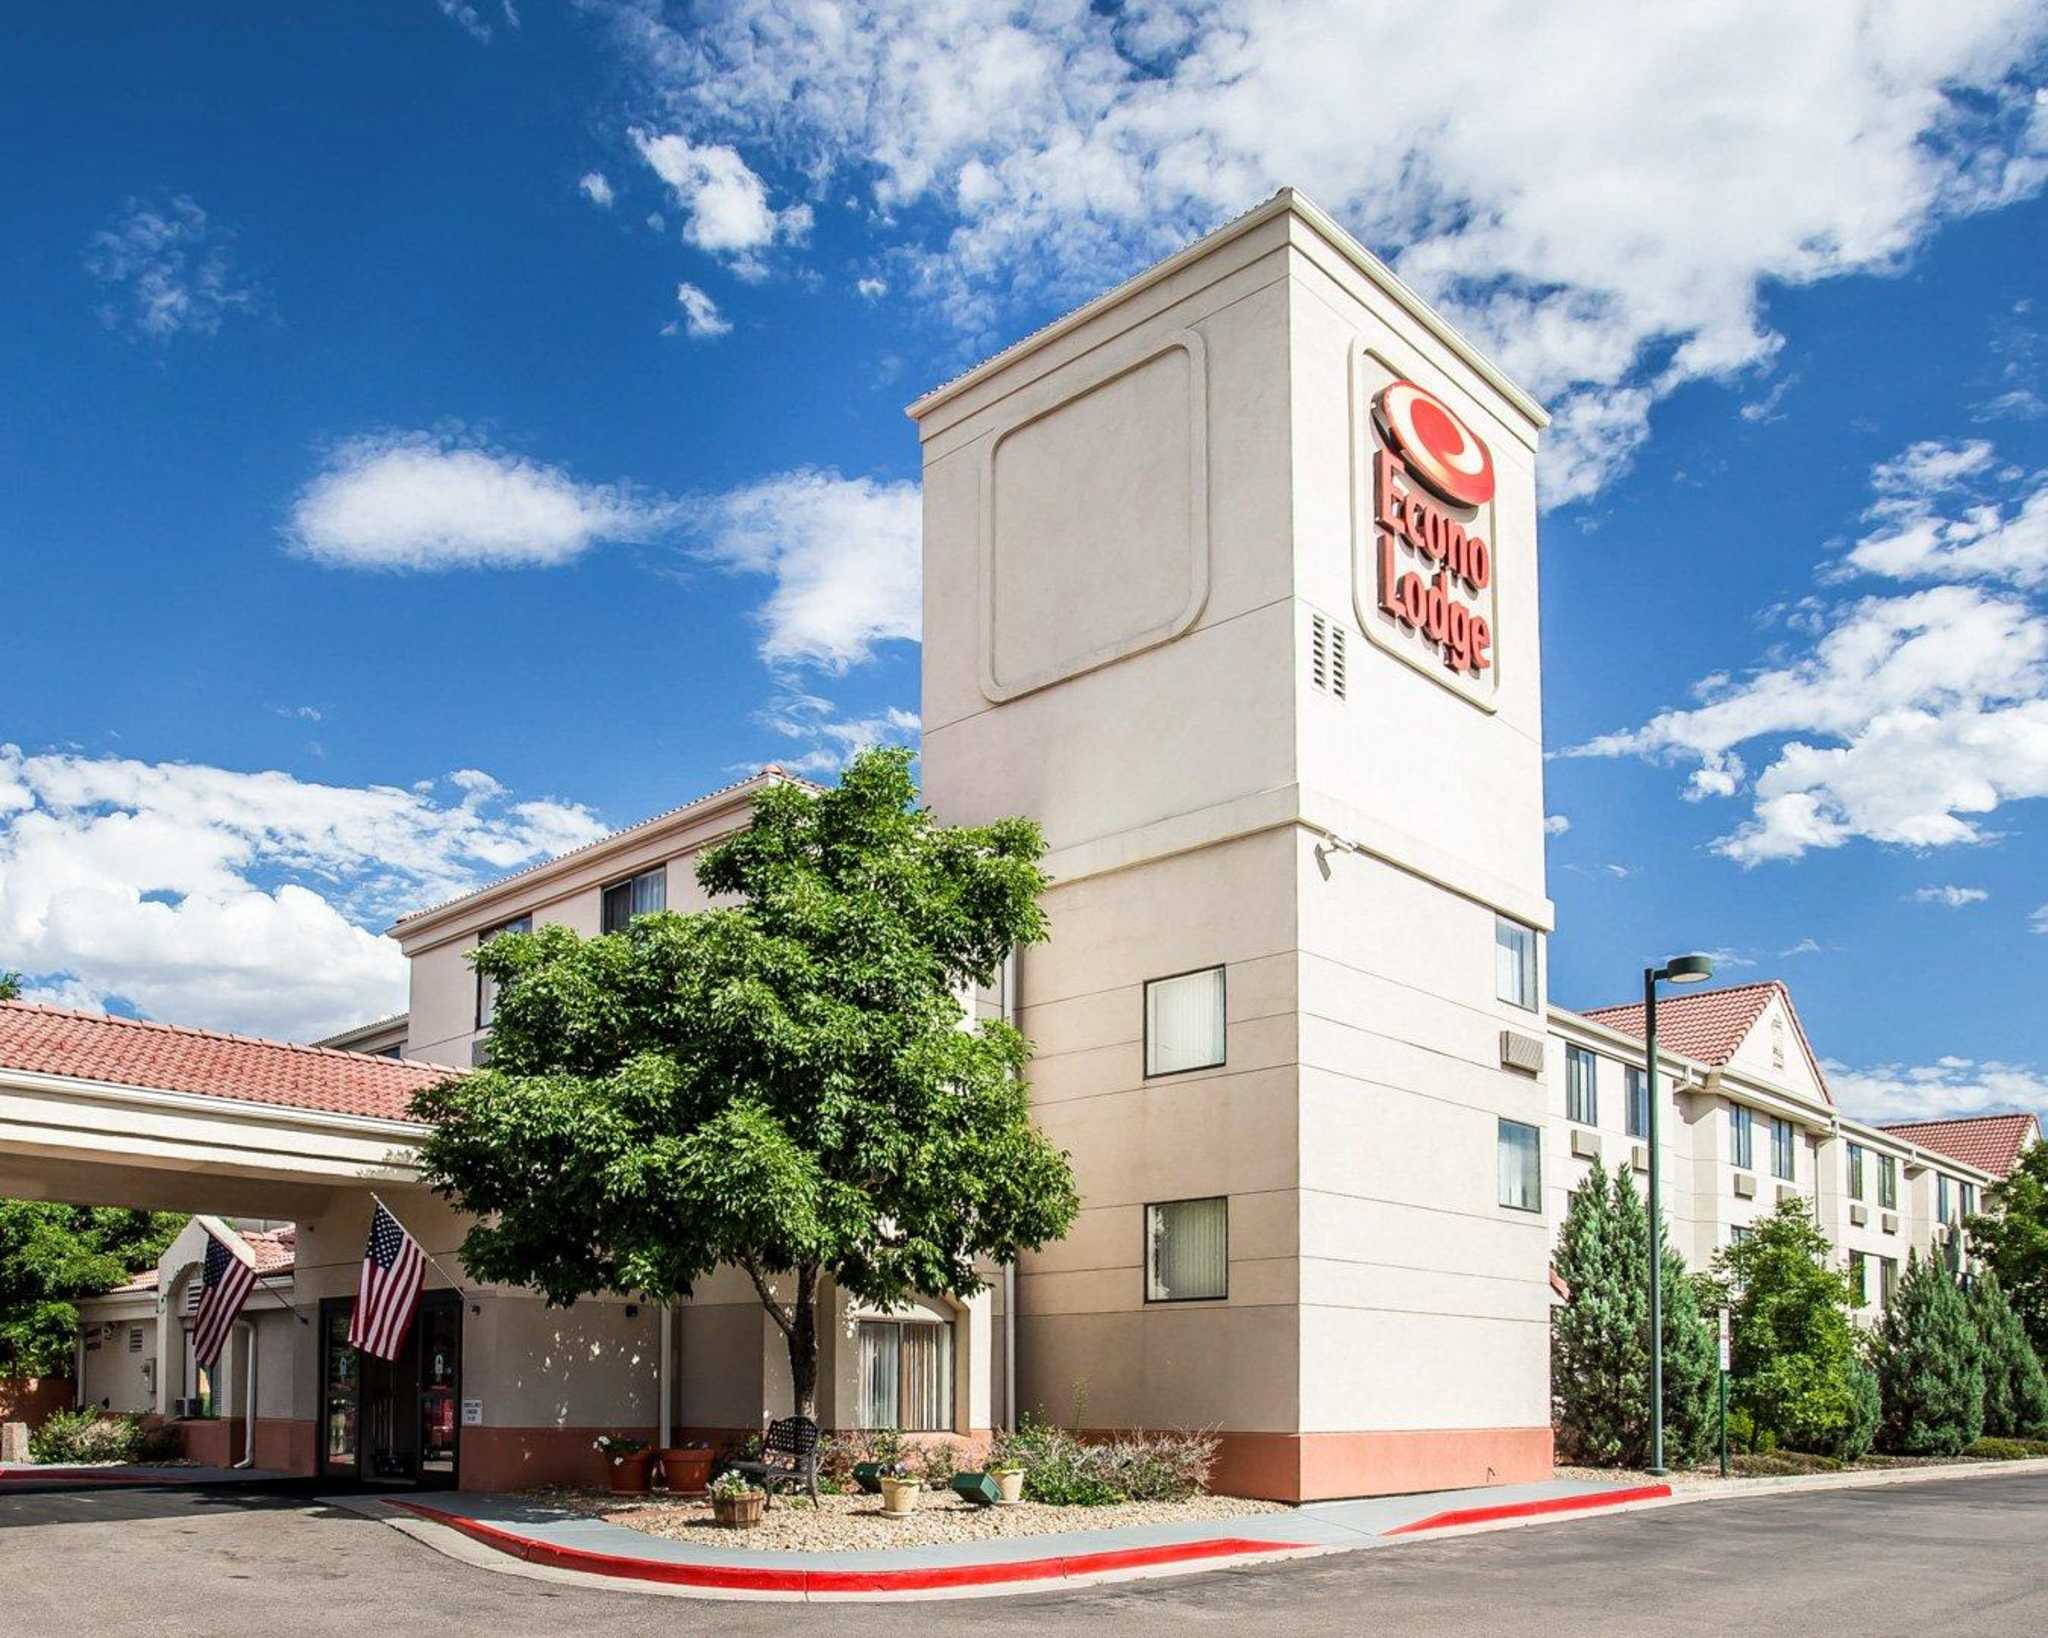 Econo Lodge Denver International Airport  Aurora Colorado  Co